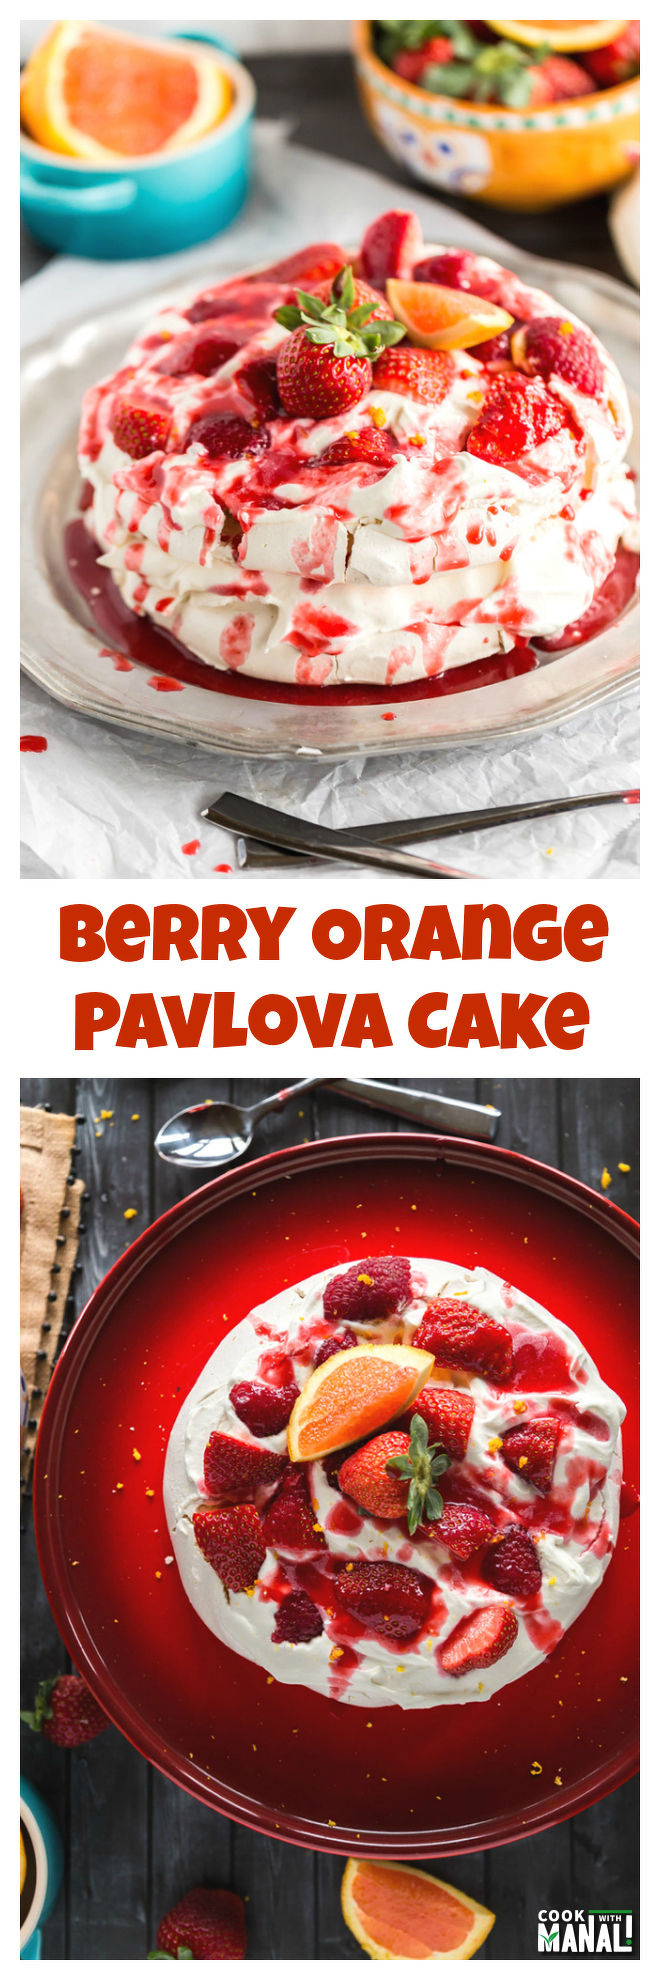 Berry Orange Pavlova Cake Collage